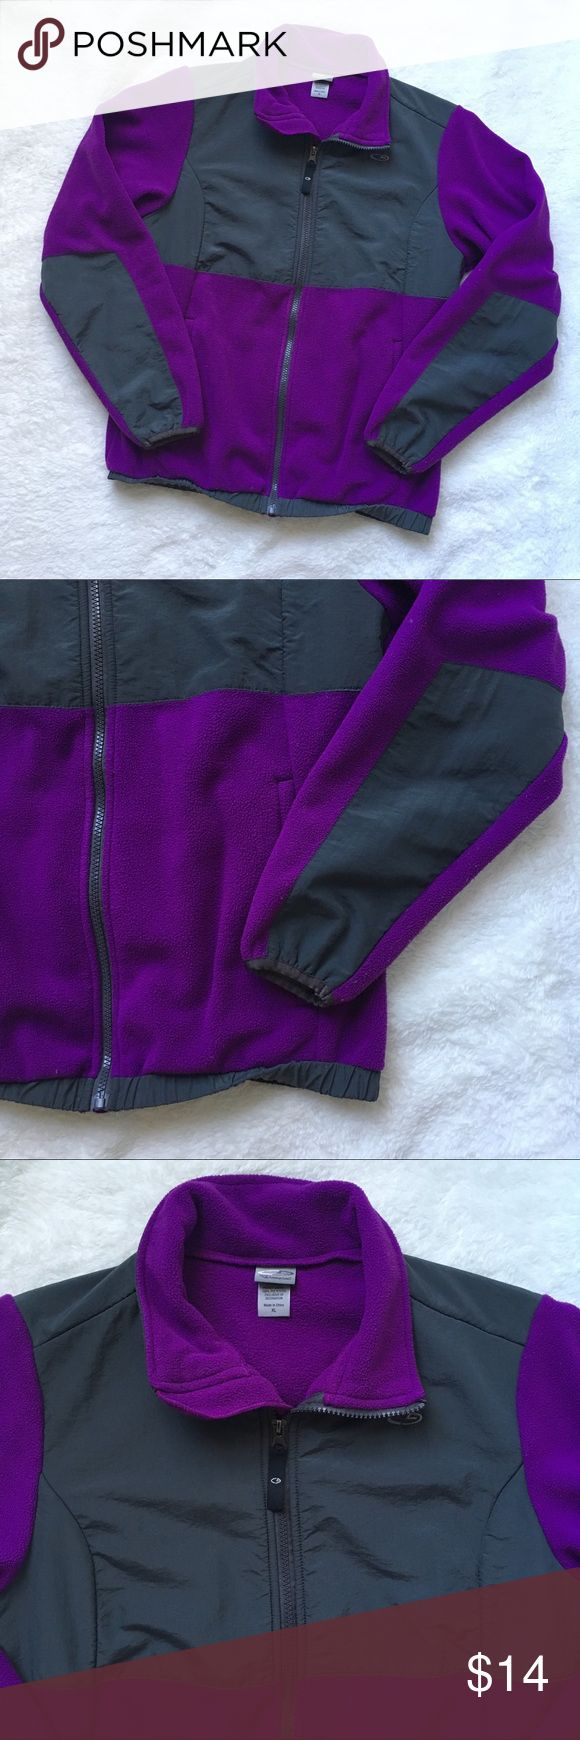 C9 by Champion Purple Zip Up Fleece Girls XL C9 by Champion Purple Zip Up Fleece Girls XL. This extra large definitely fits a small-medium women's size. I️ tried it on and it fits, I️ wear a S/M depending on the brand. It is in really good condition, seems as though the elastic at the bottom hem got a bit twisted though. Champion Jackets & Coats